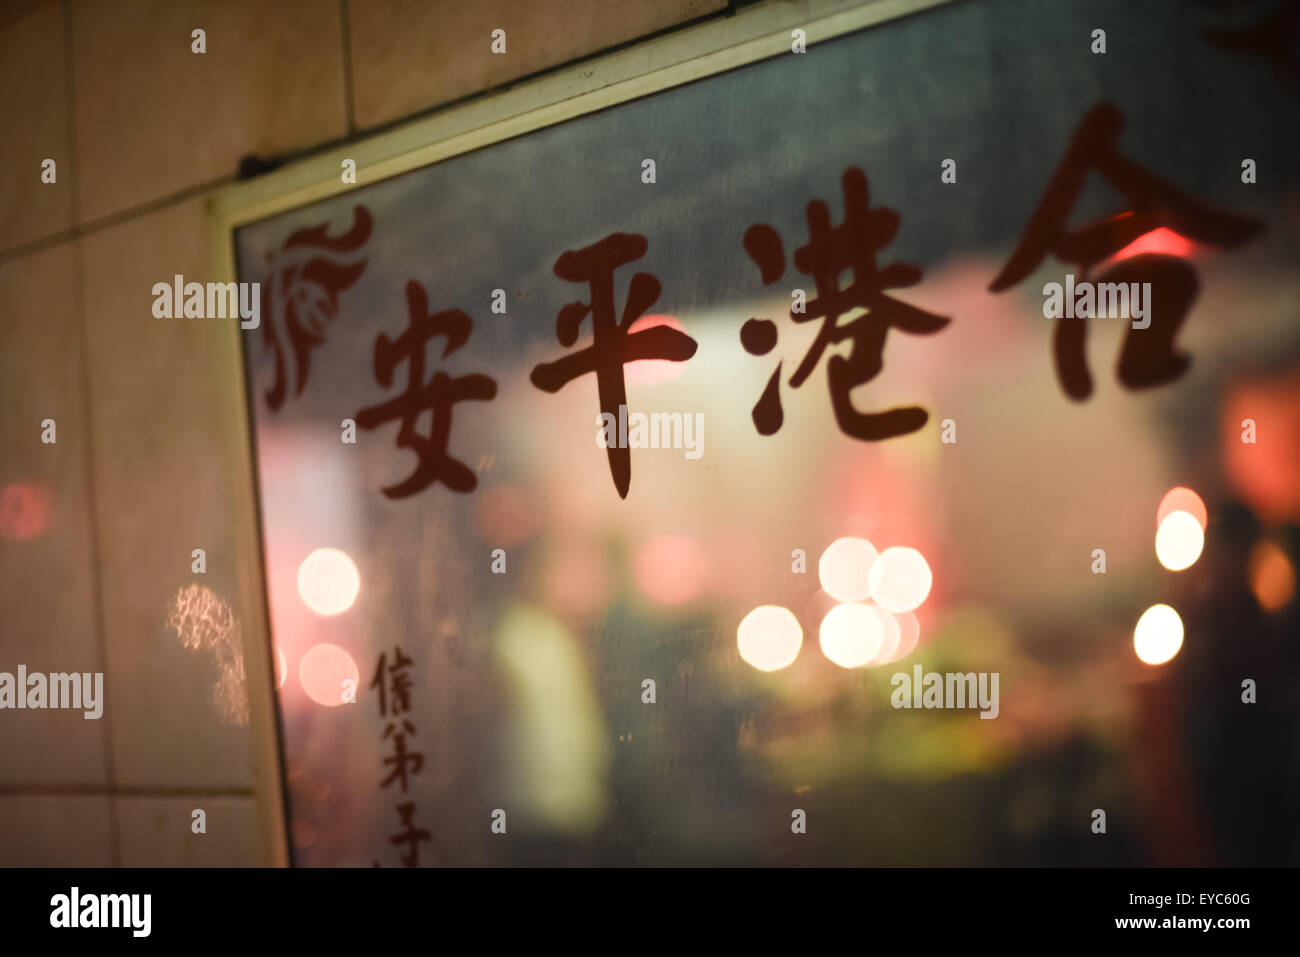 Chinese scripts on mirror. - Stock Image